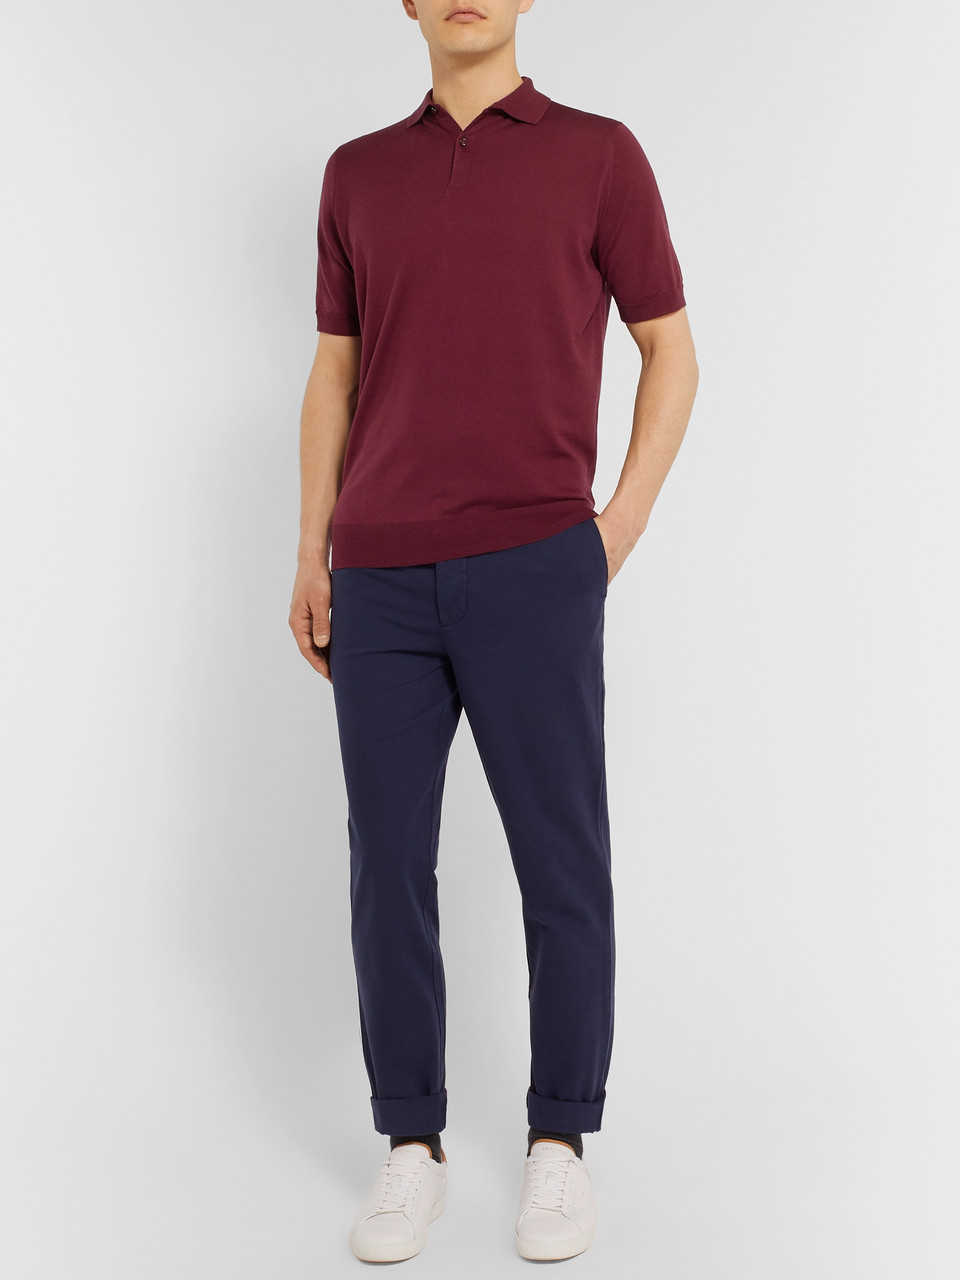 John Smedley Slim-Fit Virgin Wool Polo Shirt